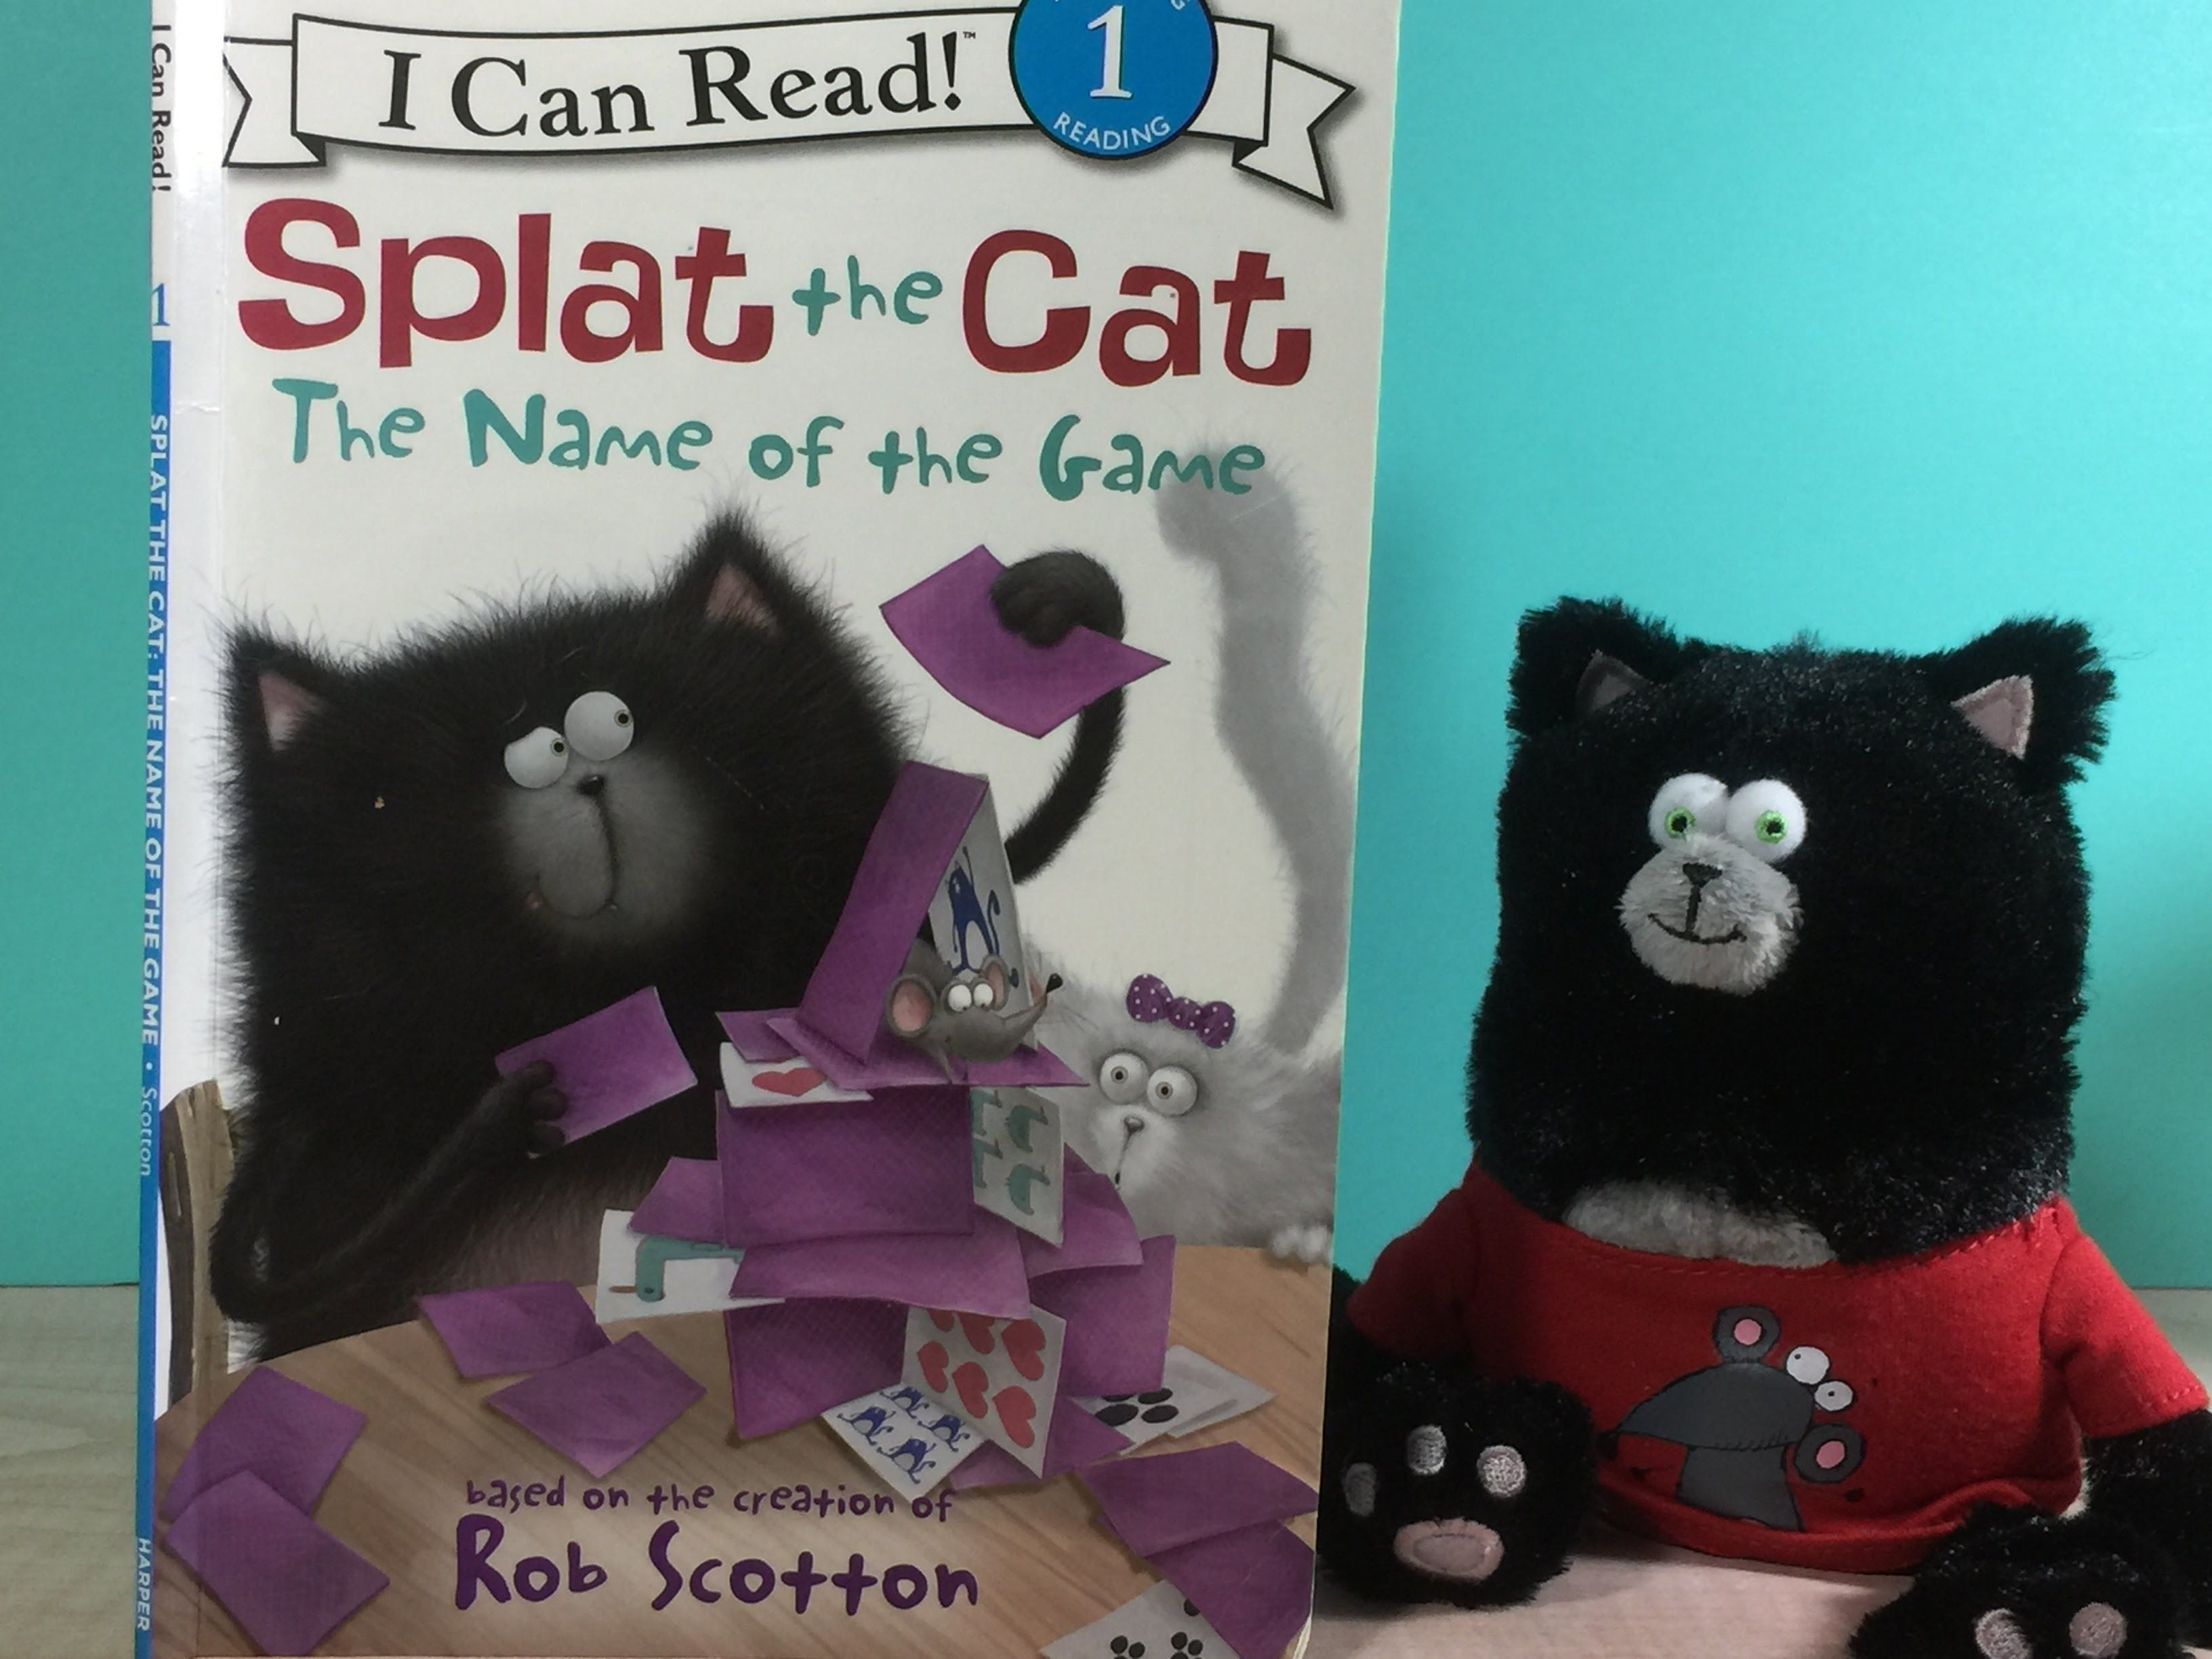 Splat the cat the name of the game by rob scotton